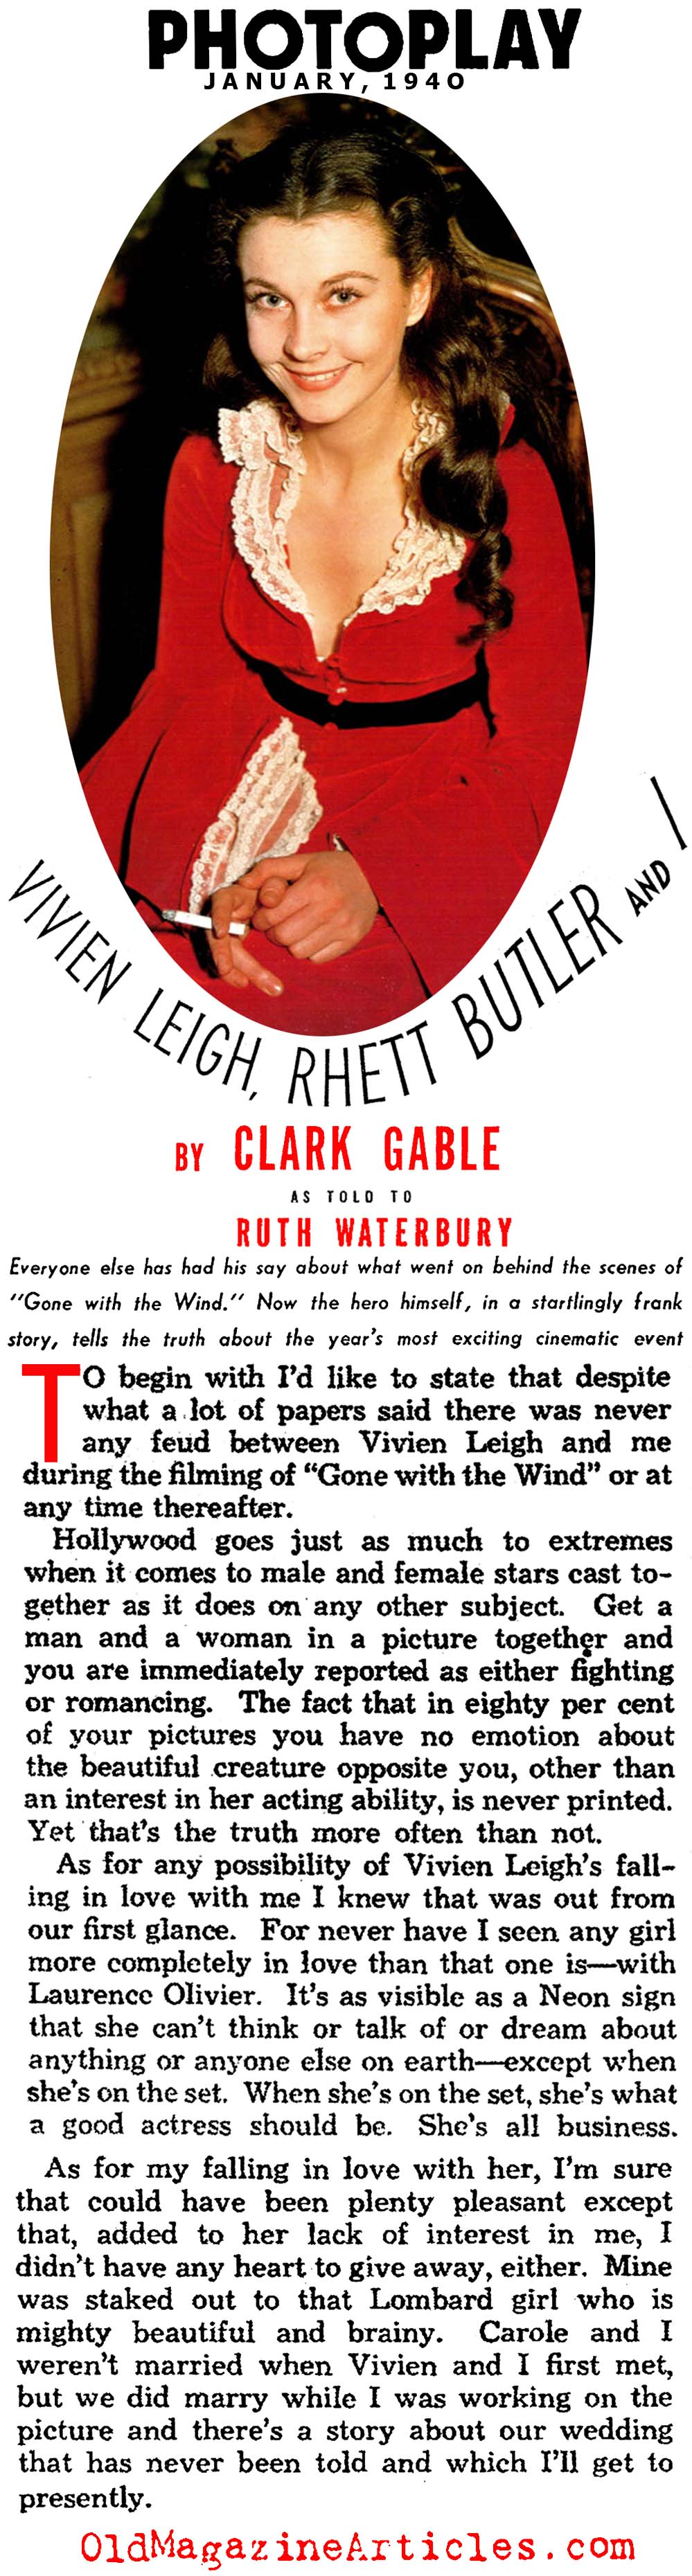 Behind the Scenes with Clark Gable... (Photoplay Magazine, 1940)